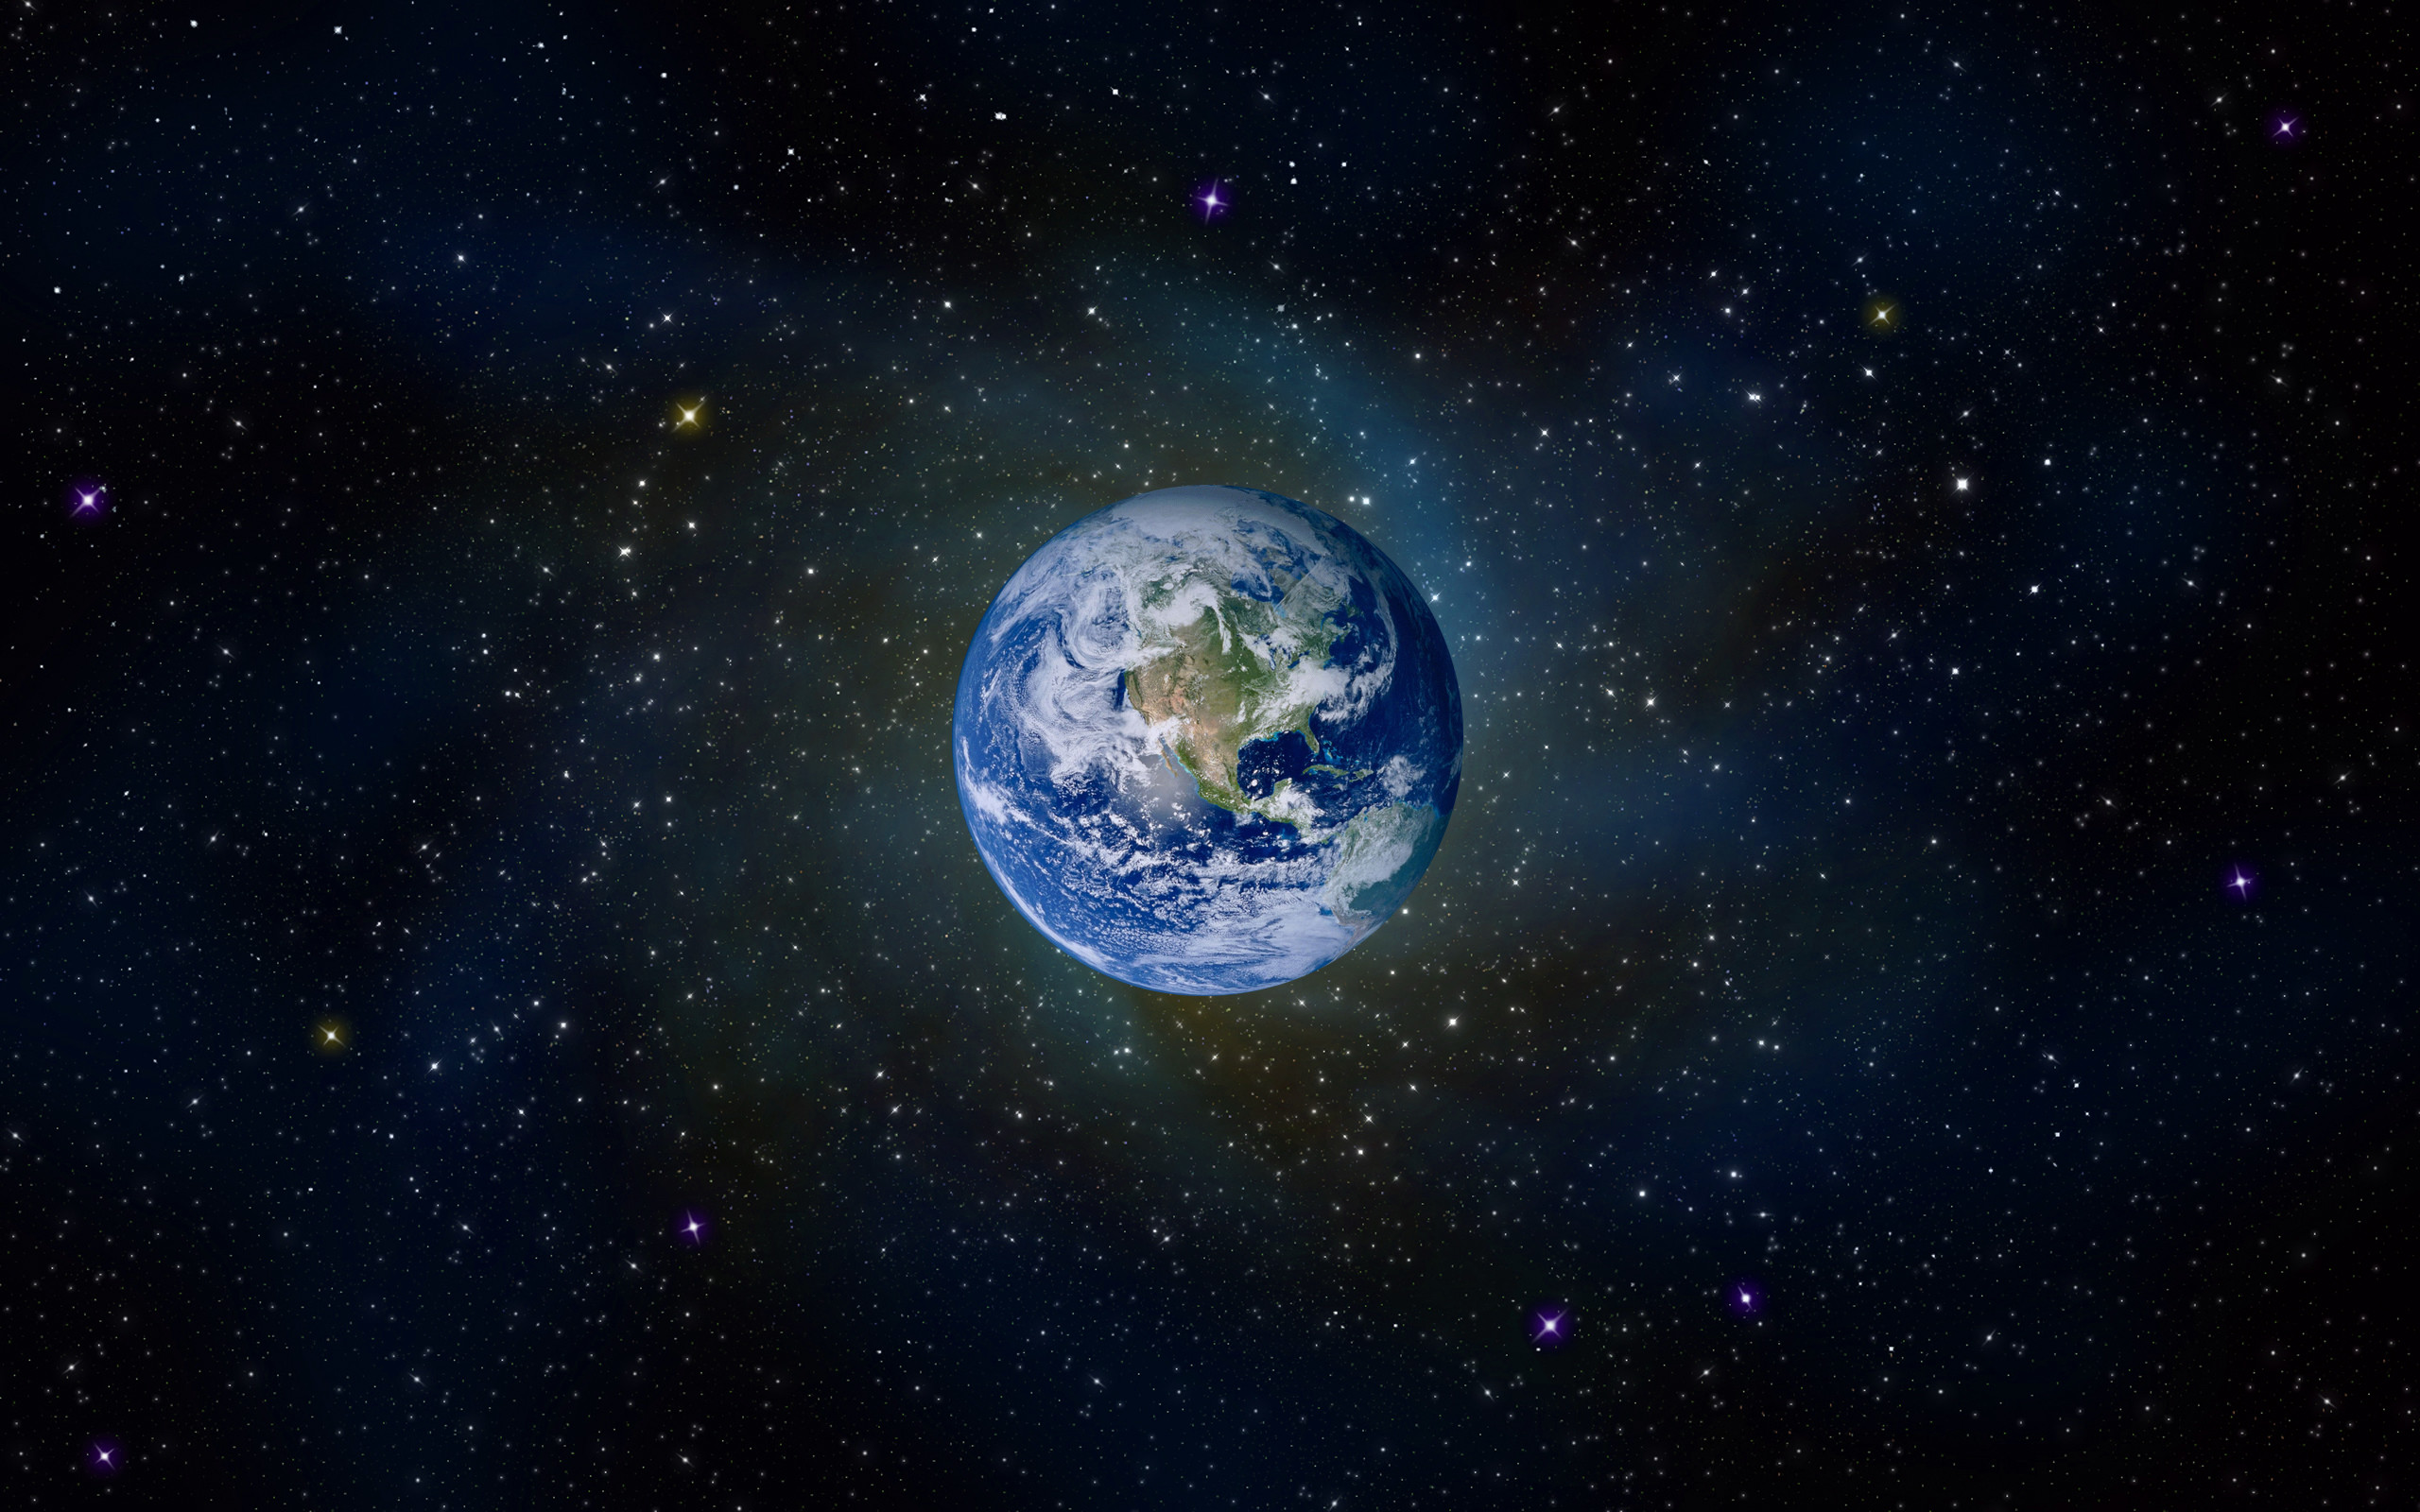 Timelapse Earth – Wondrous Views of the Earth from Space (Video)